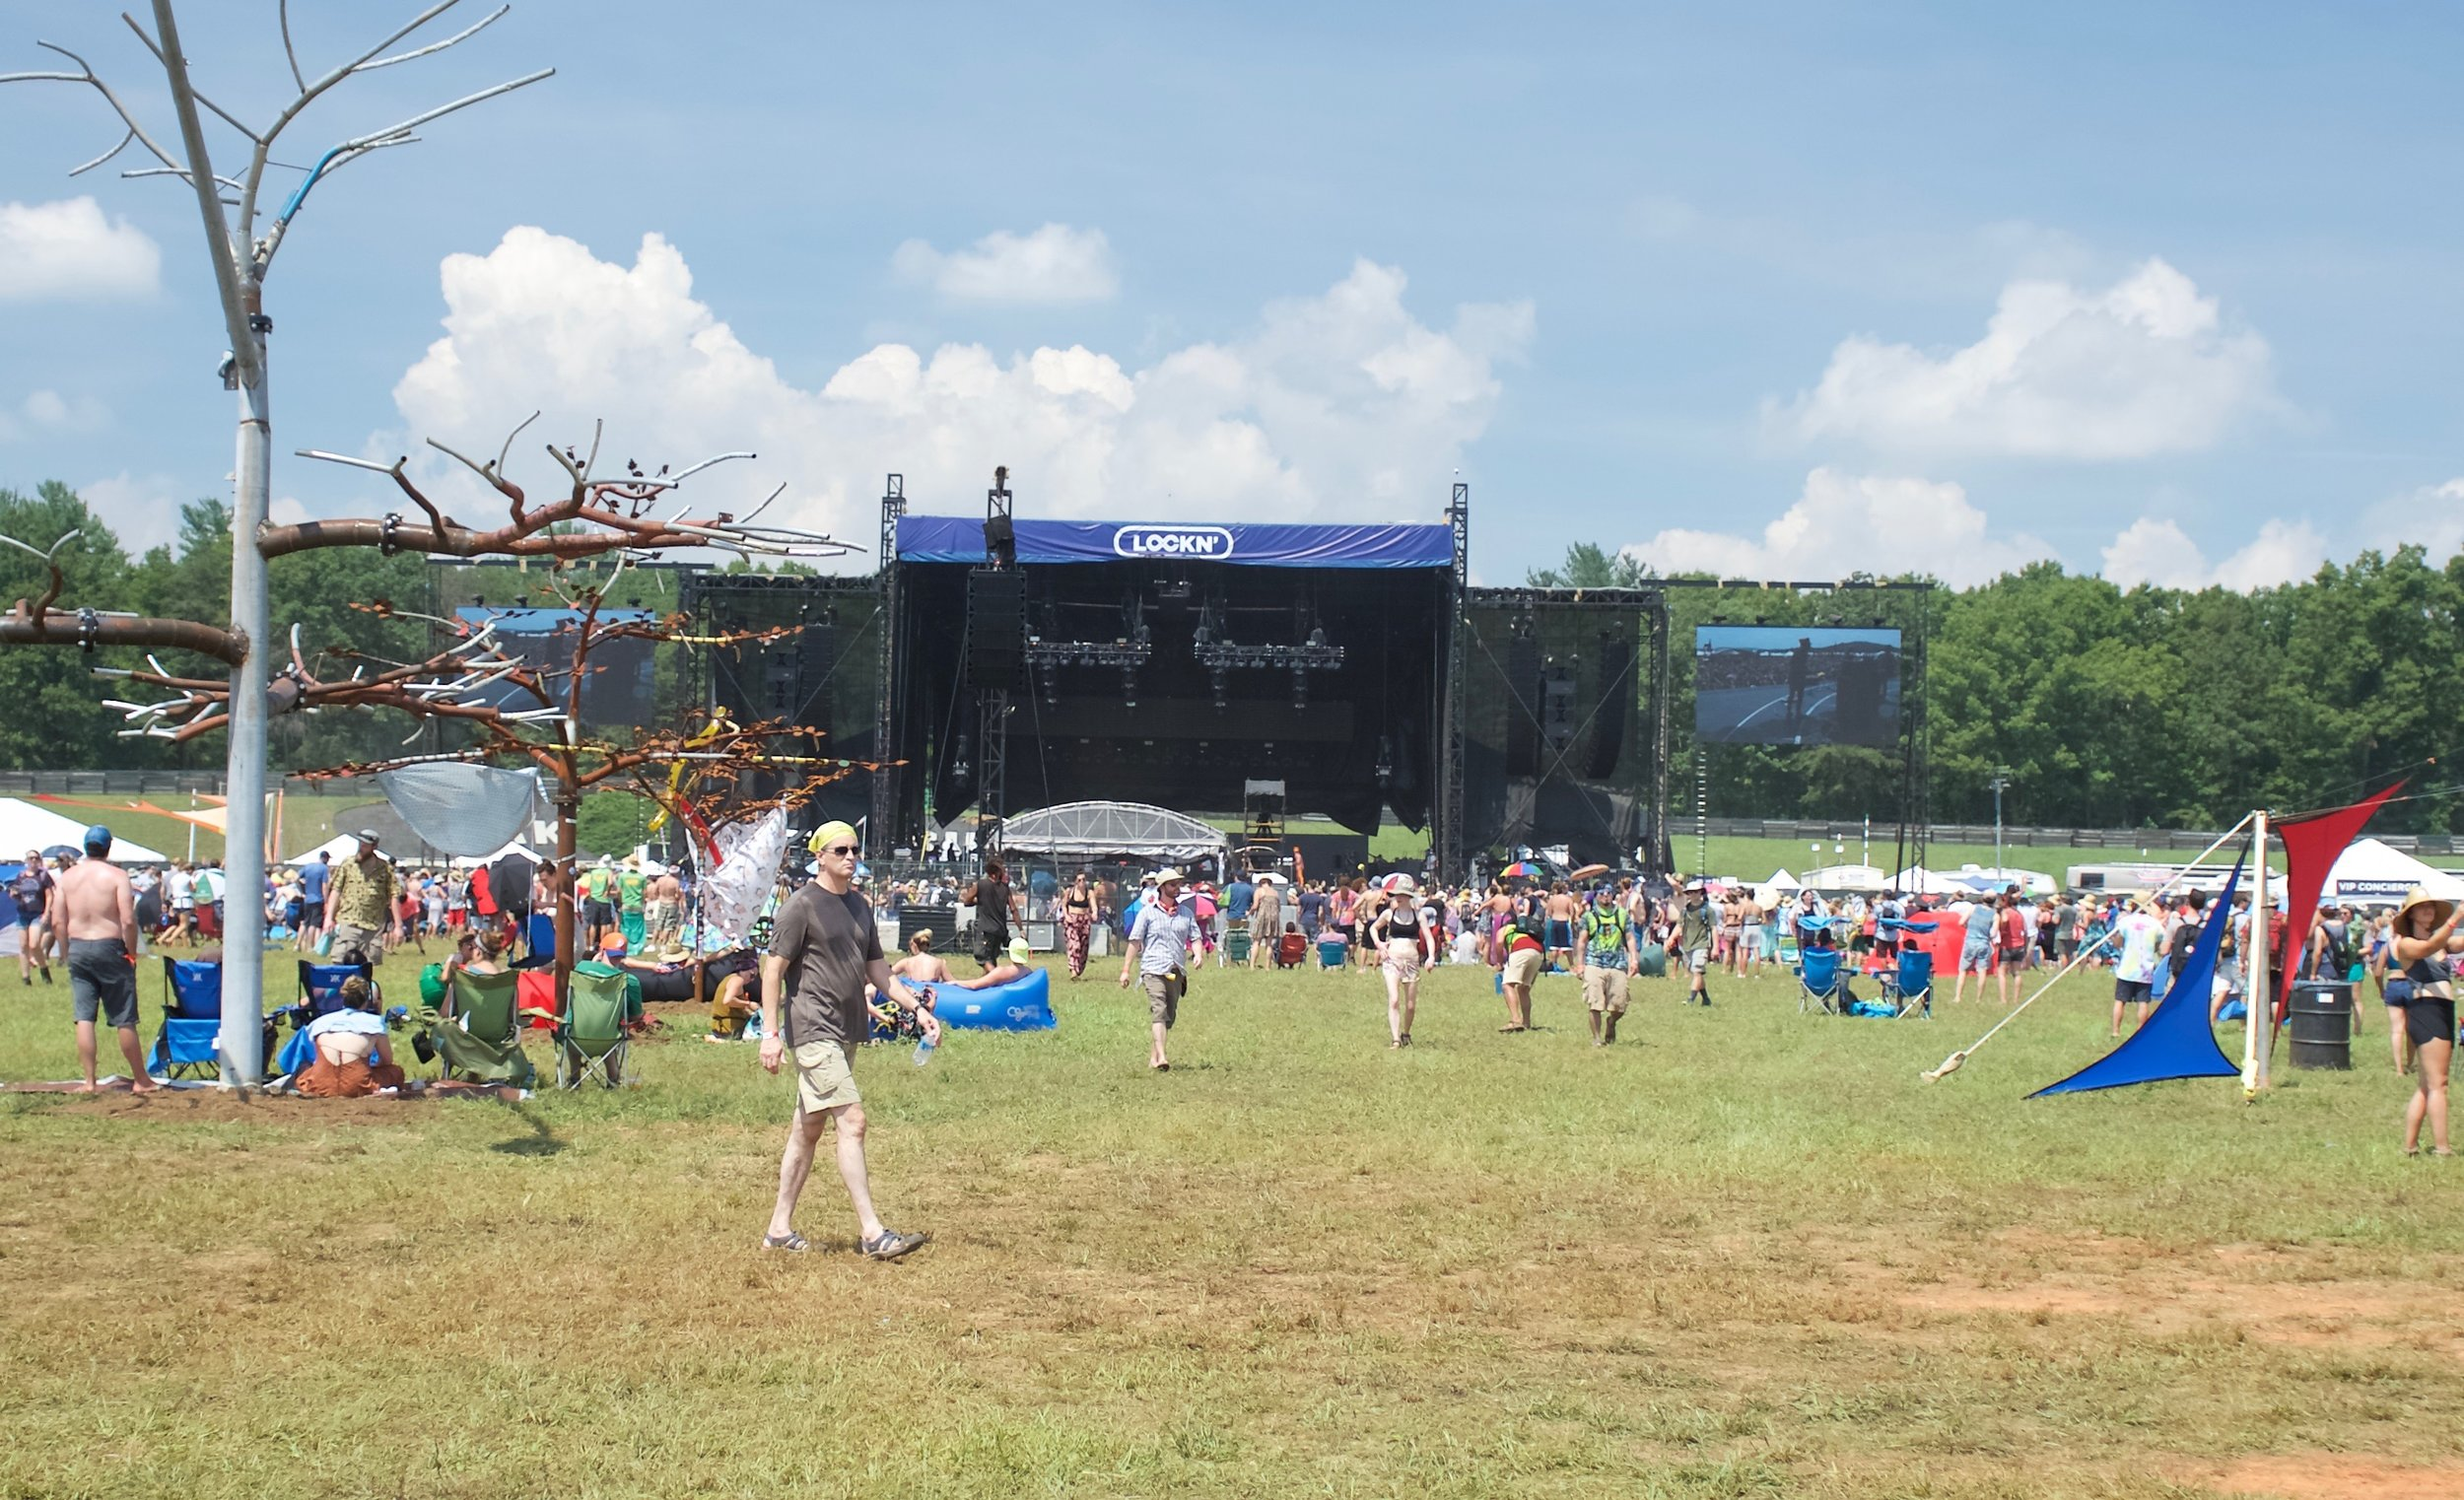 The Main Stage and festival grounds early Friday Afternoon